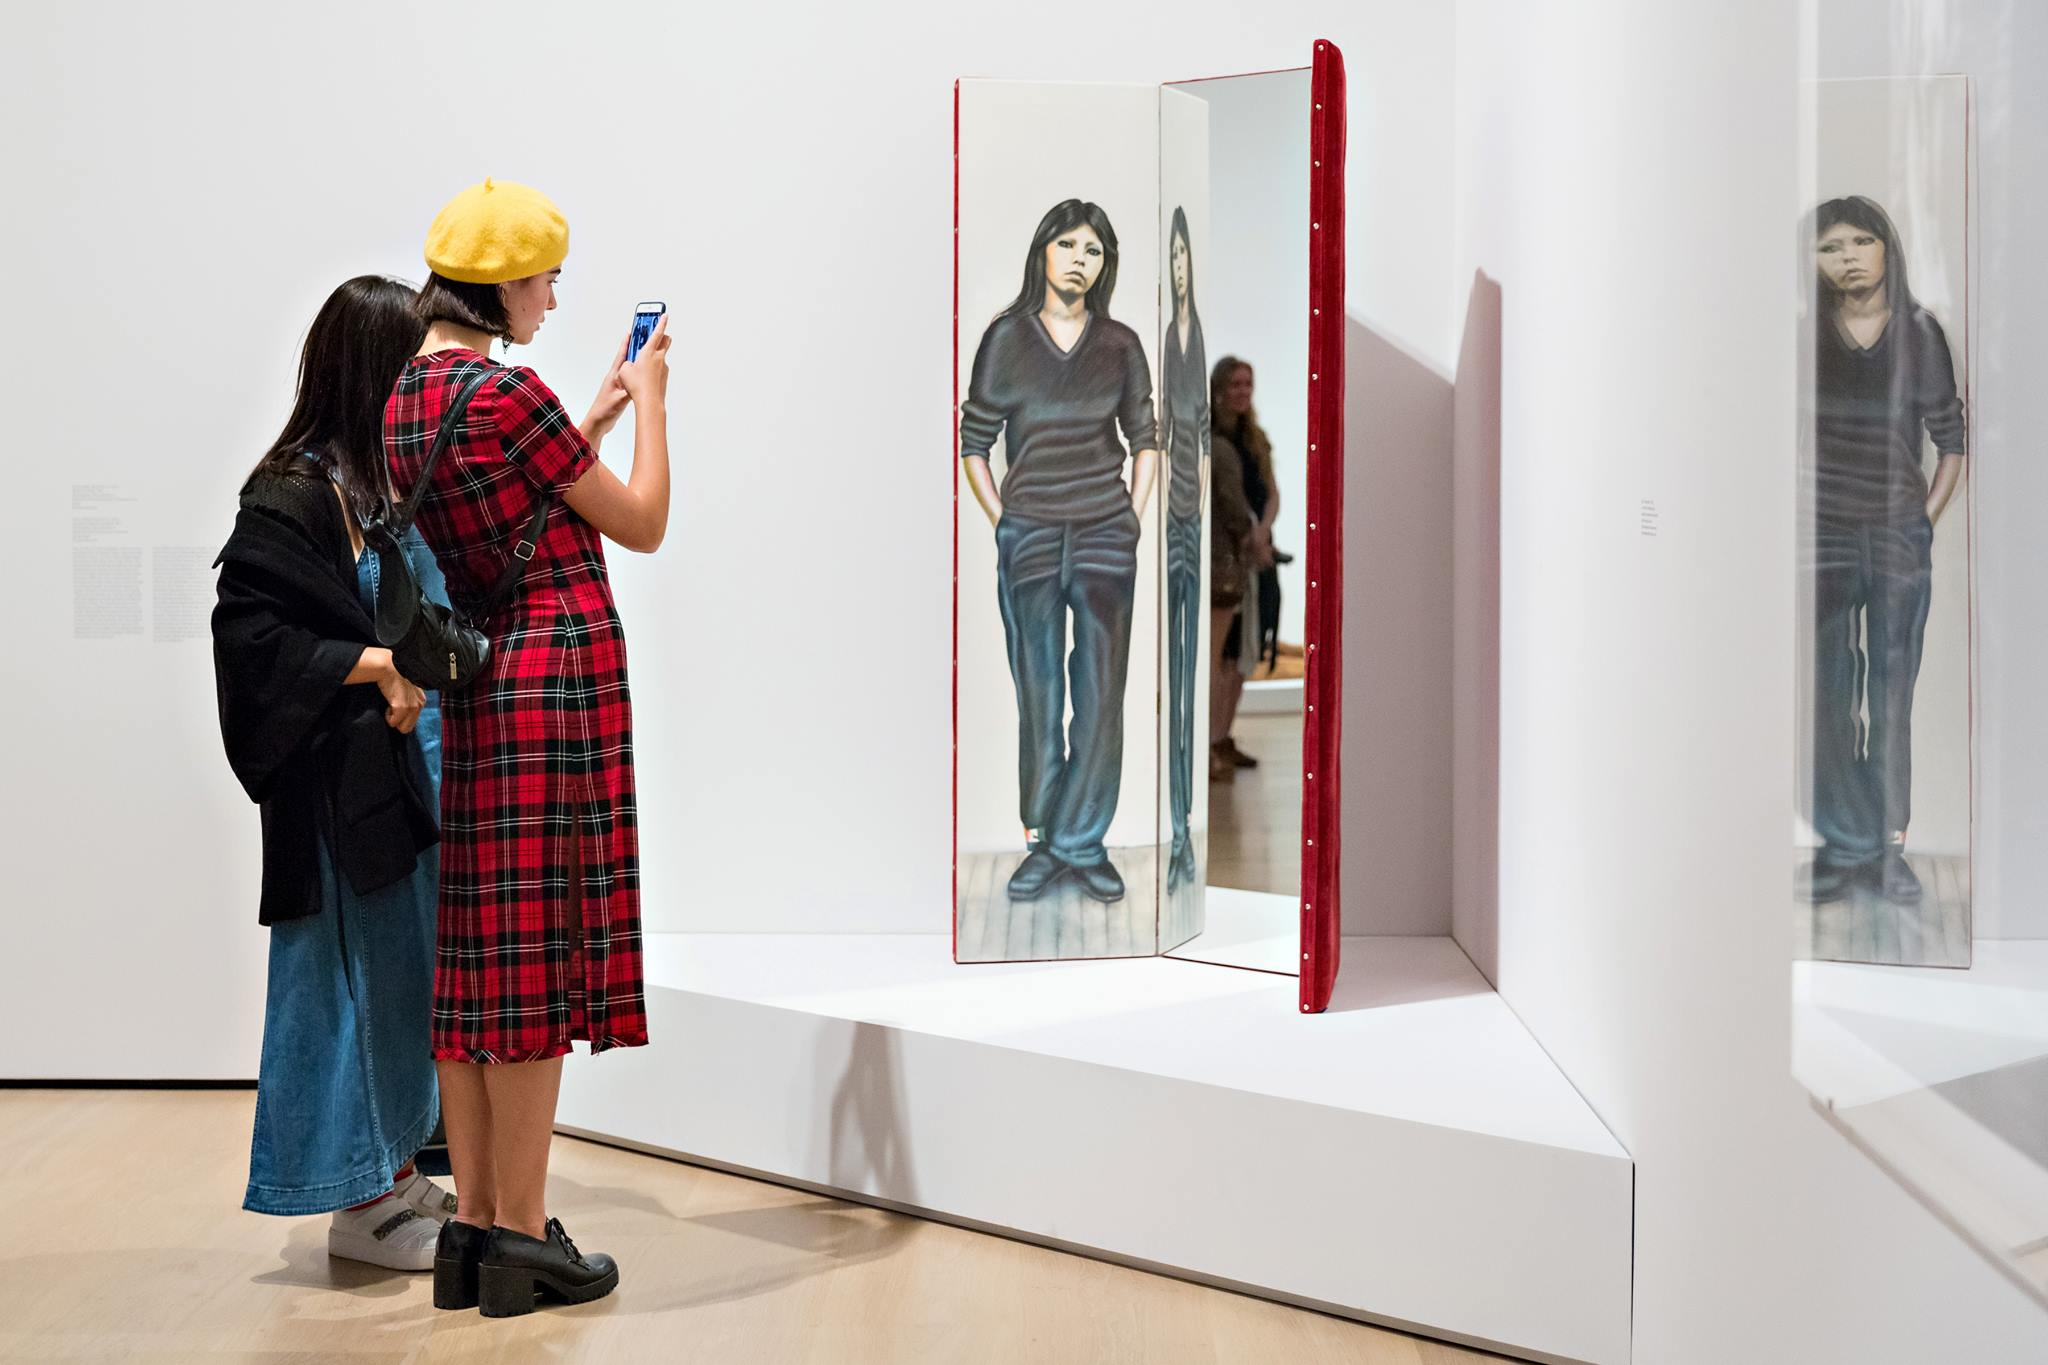 Los Angeles Art Museums Offer Diverse Exhibits At No Cost